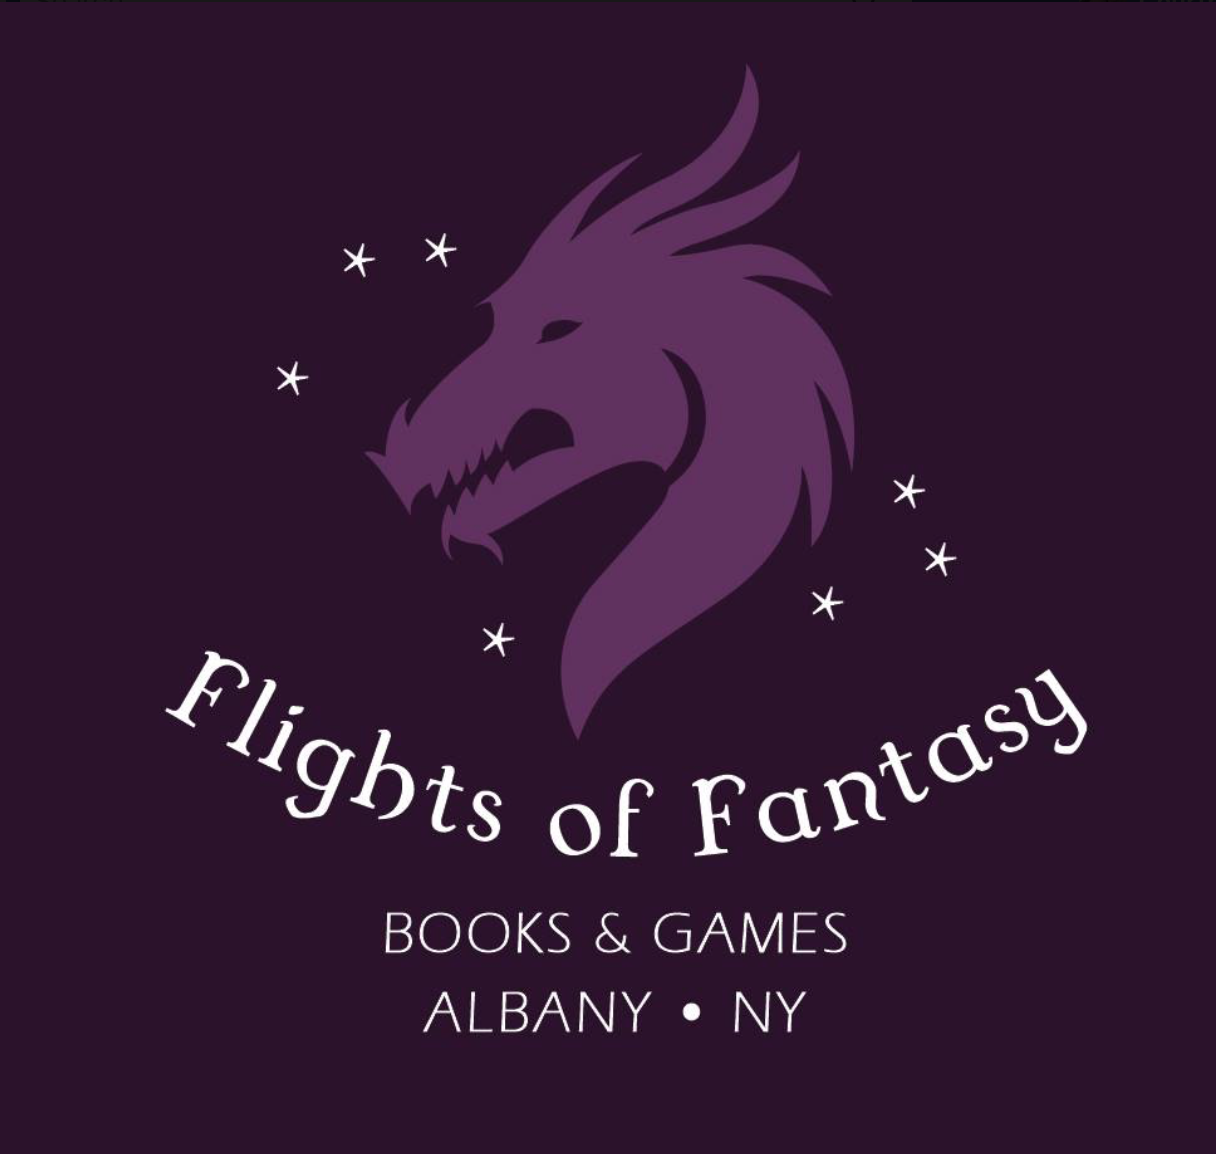 Adventure awaits at Flights of Fantasy Books & Games. We sell sci-fi and fantasy fiction as well as collectable card games with an emphasis on Magic The Gathering.